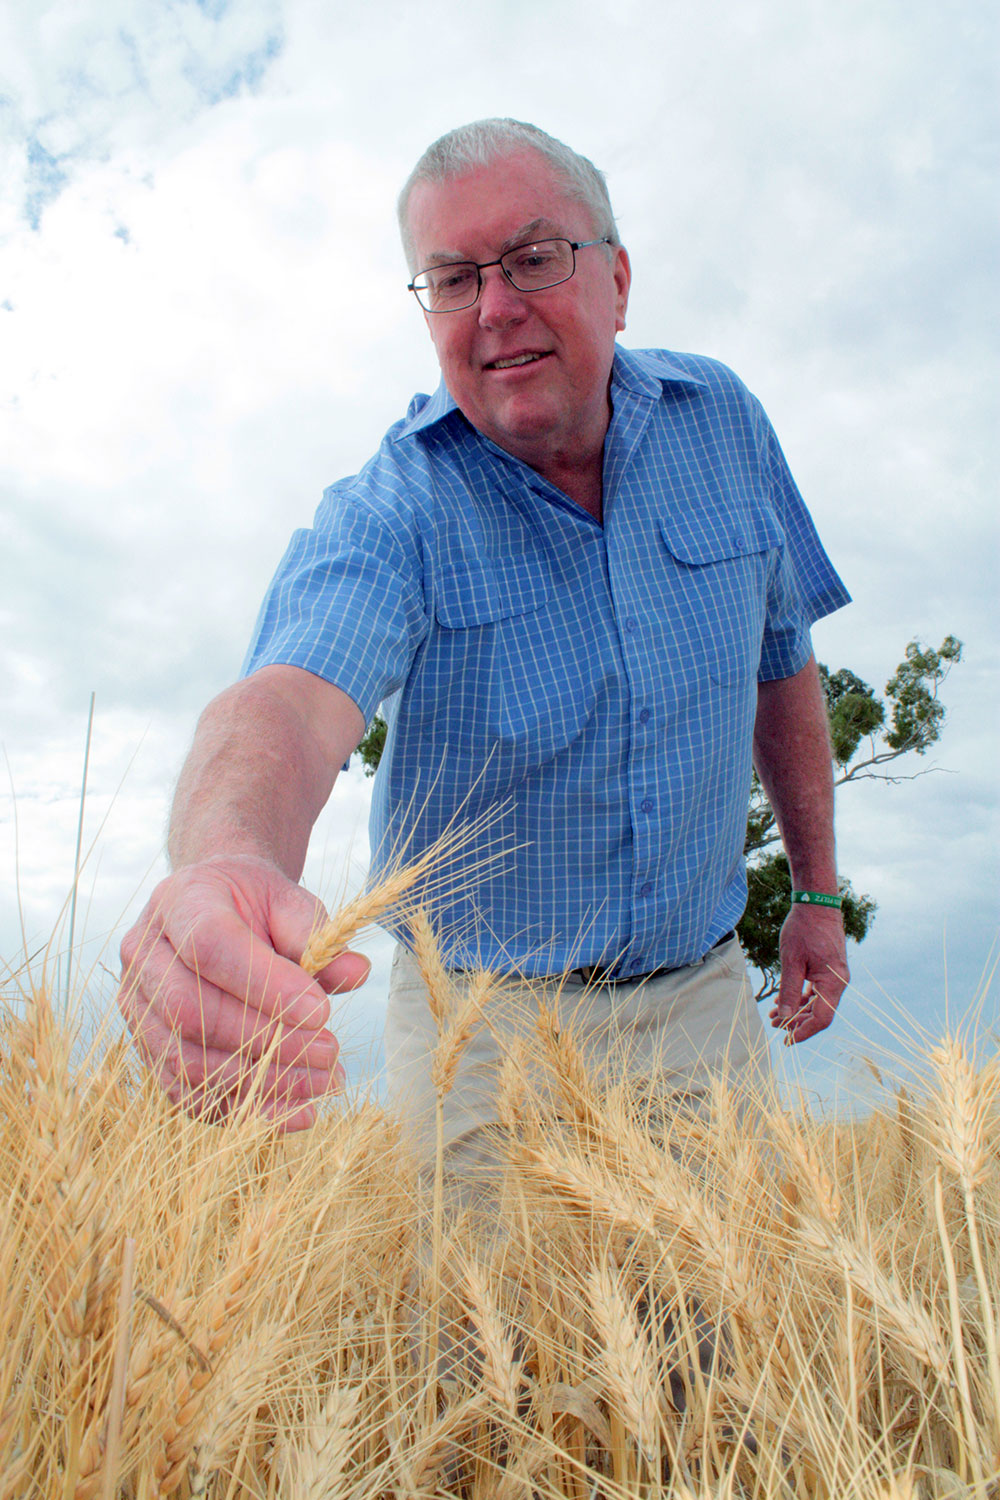 John Pitz is reaching towards the camera to inspect a wheat crop